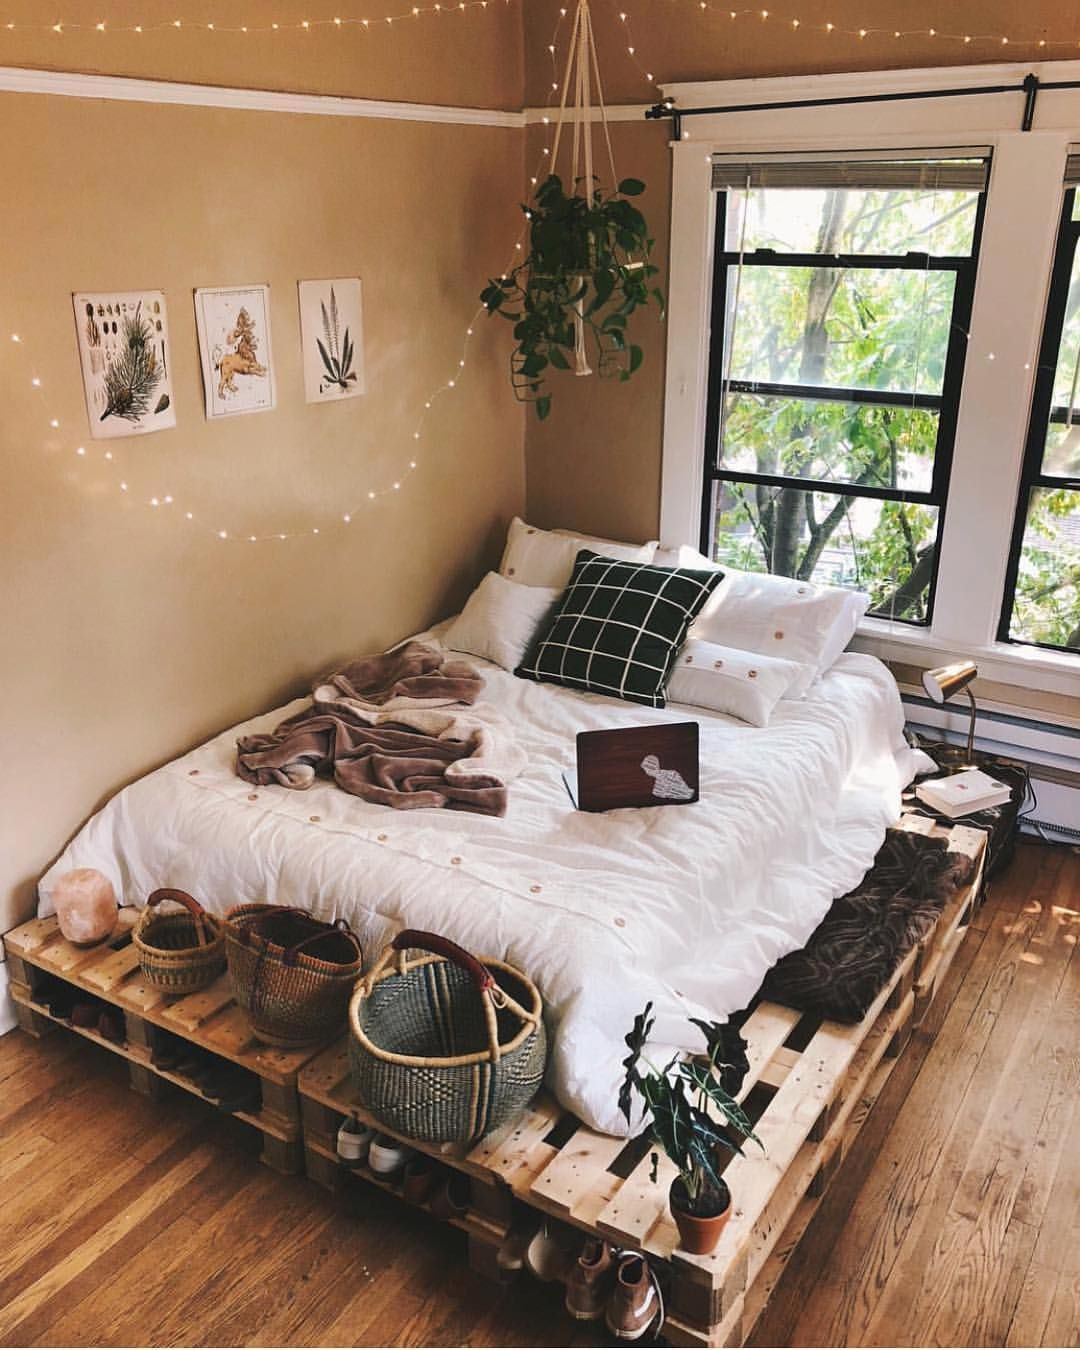 Use Some Old Pallets And Add Christmas Lights To Make Your Own Bed